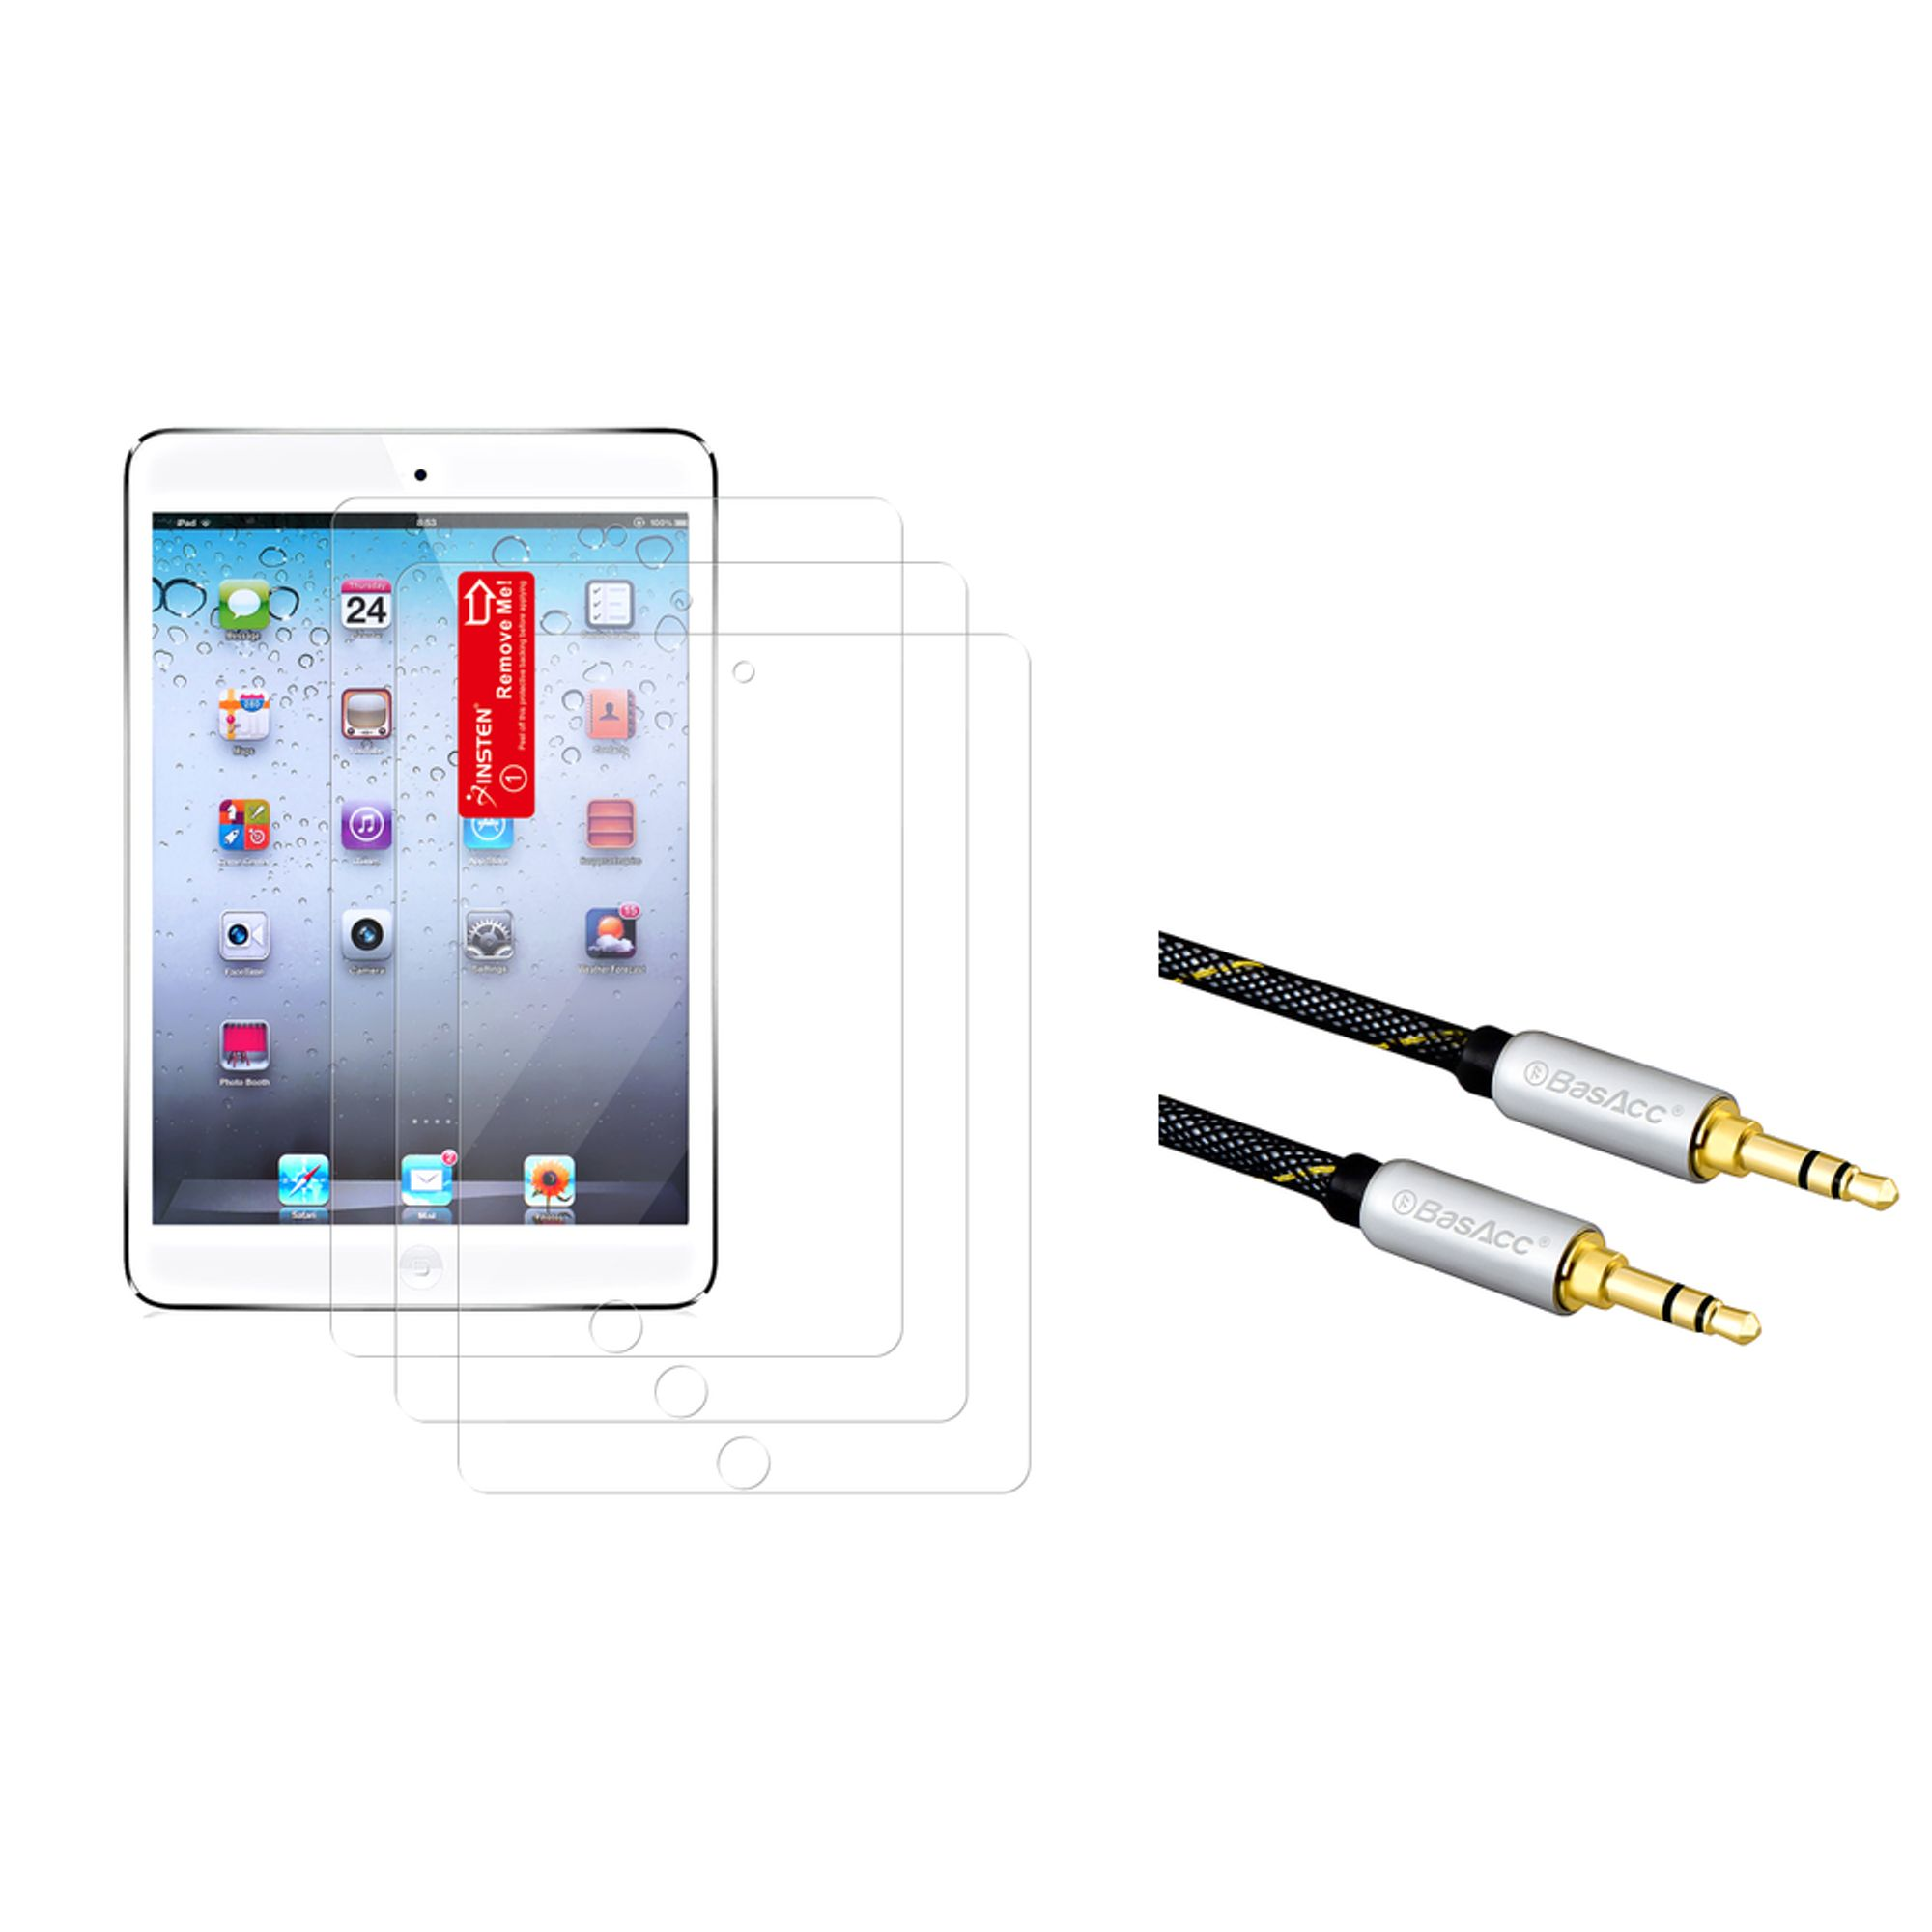 Insten 3-piece Screen Protector For iPad Mini 3 2 1 (+ 3.5mm Audio Cable) (2-in-1 Accessory Bundle)